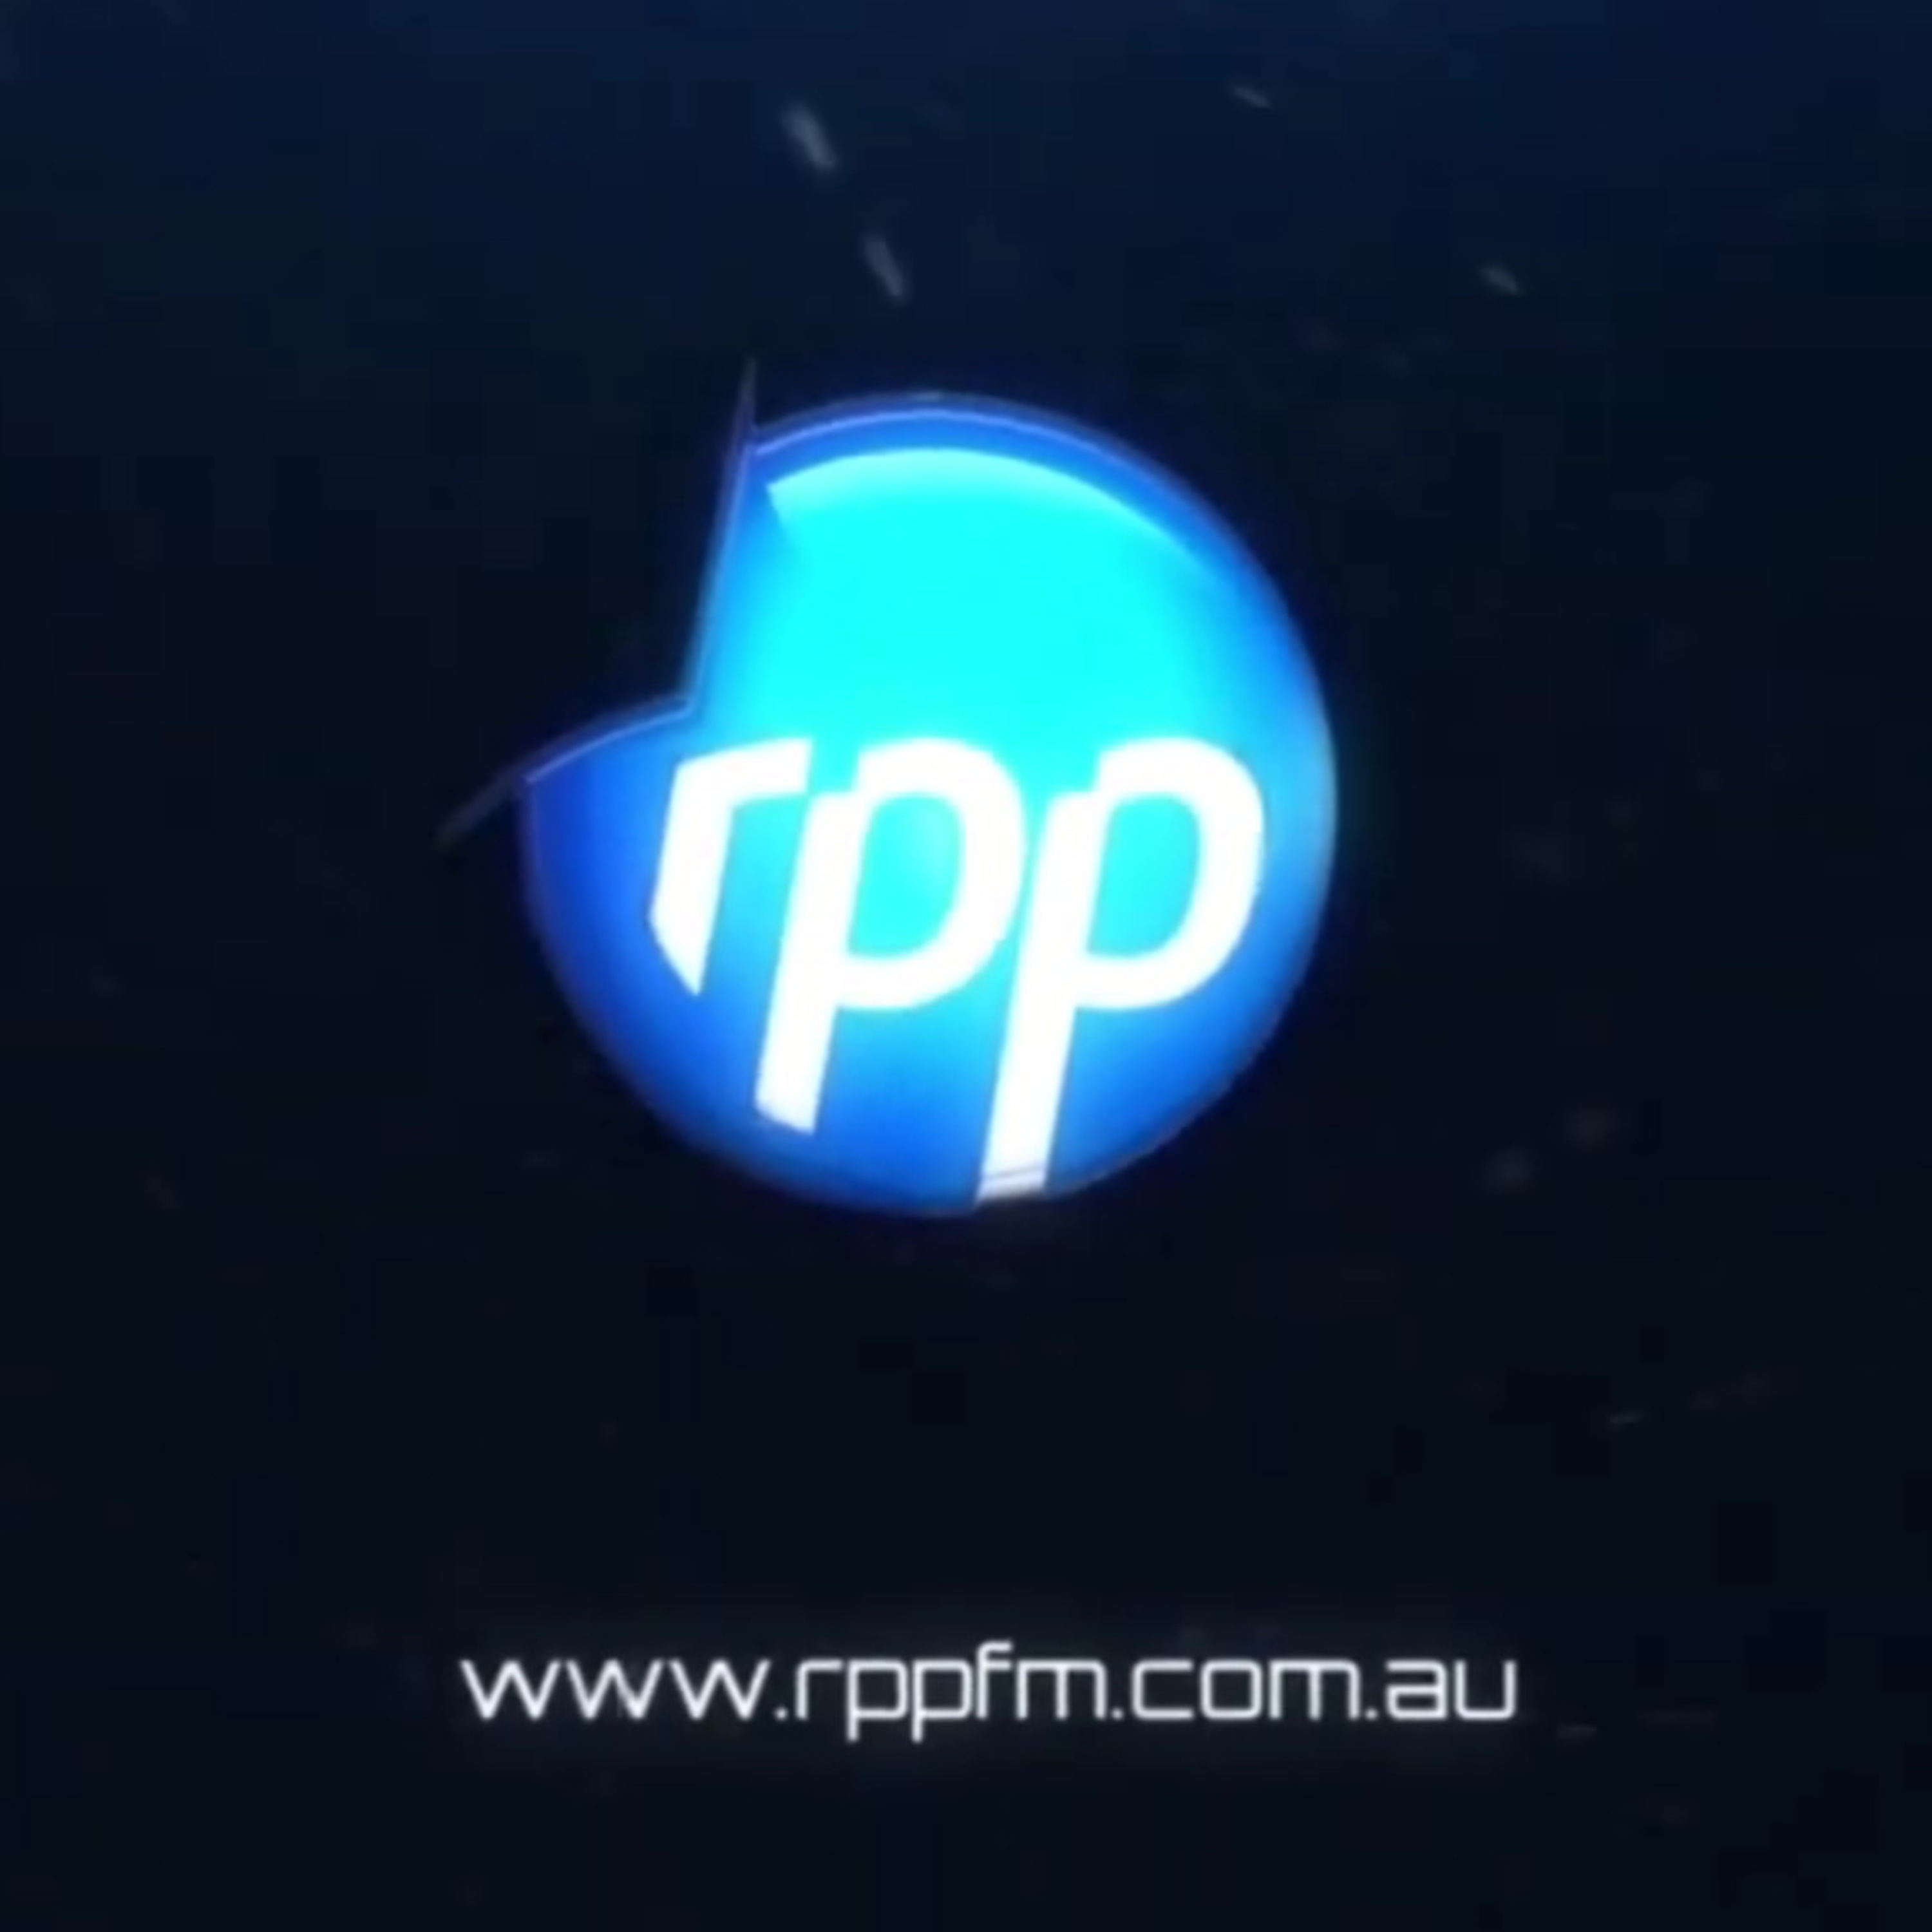 Lachlan from the RPPFM Footy Show